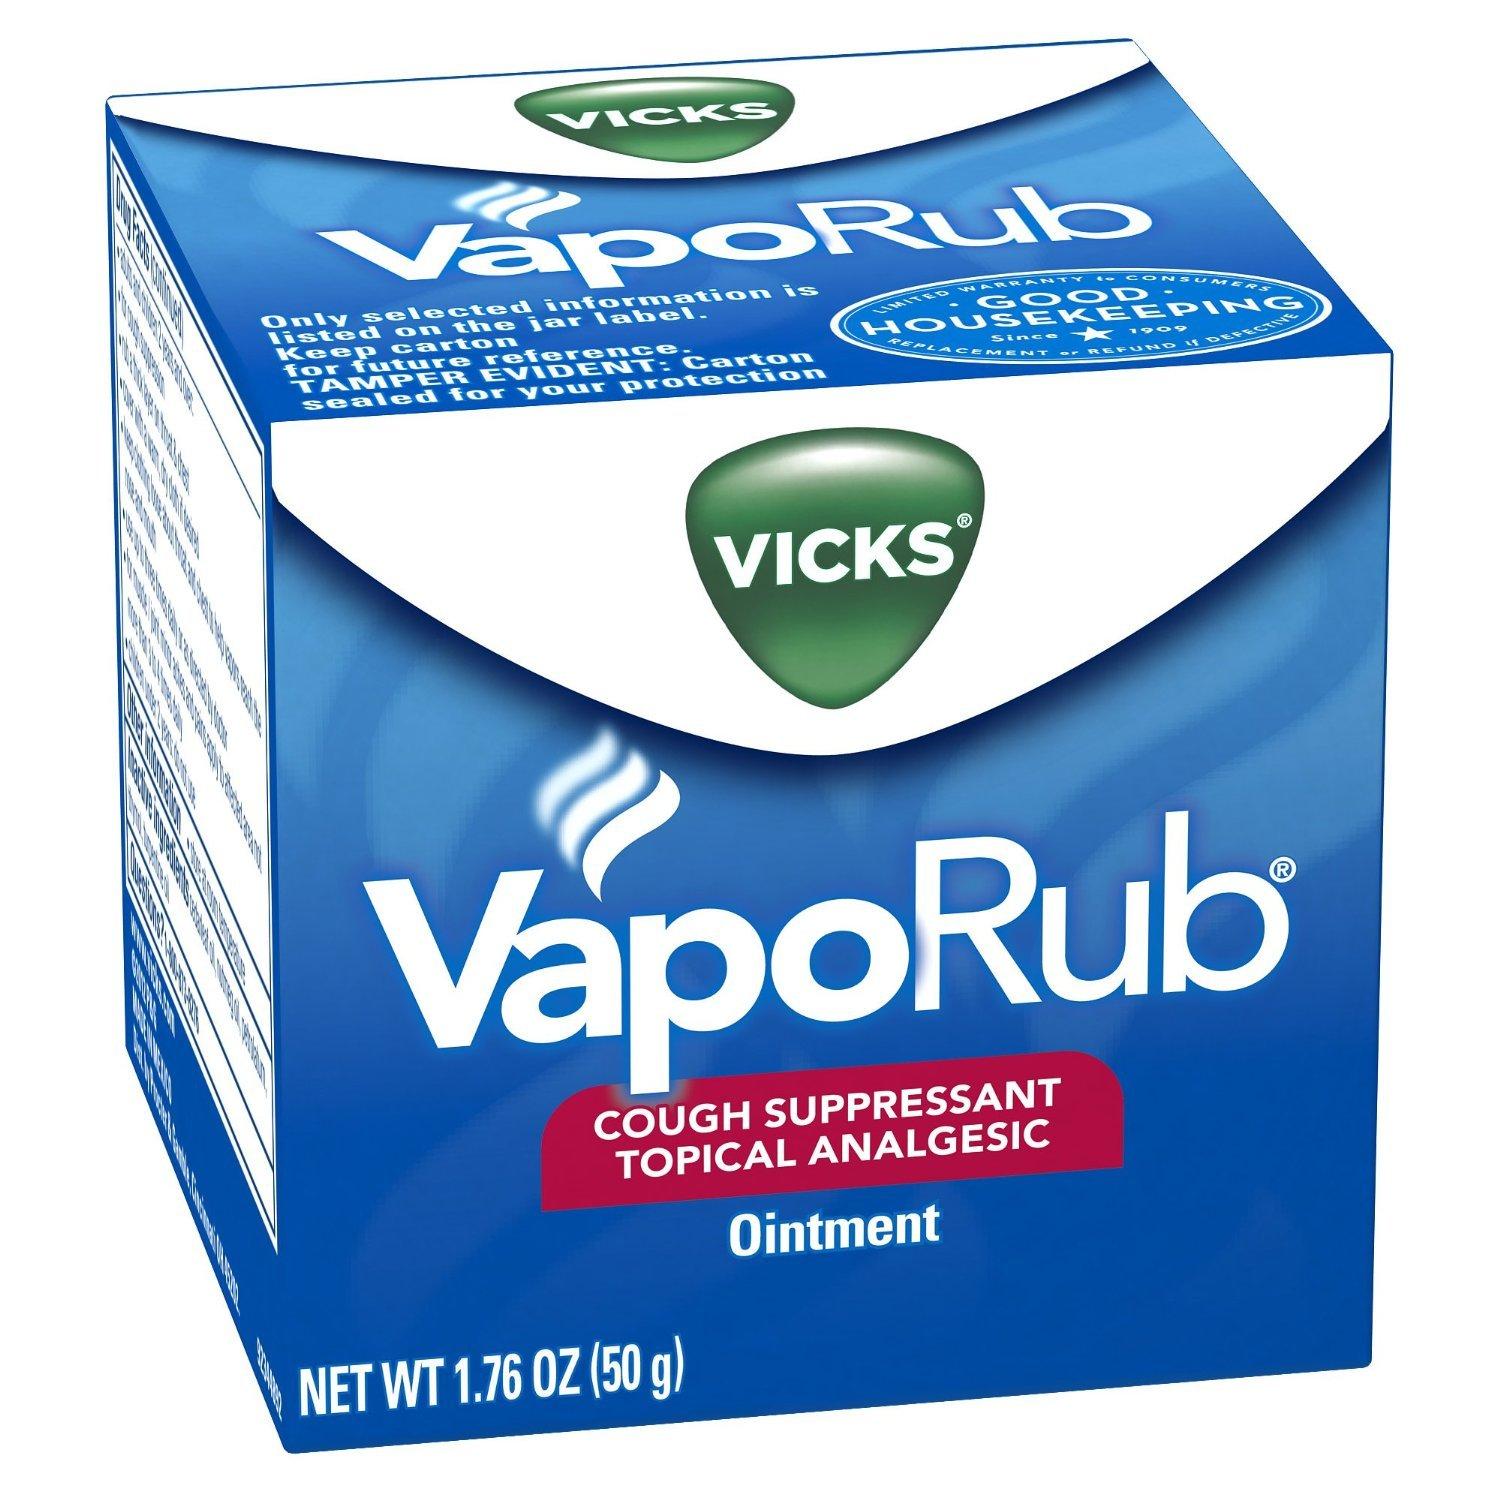 Vicks VapoRub Topical Ointment Chest Rub 1.76oz - (2 PACK)